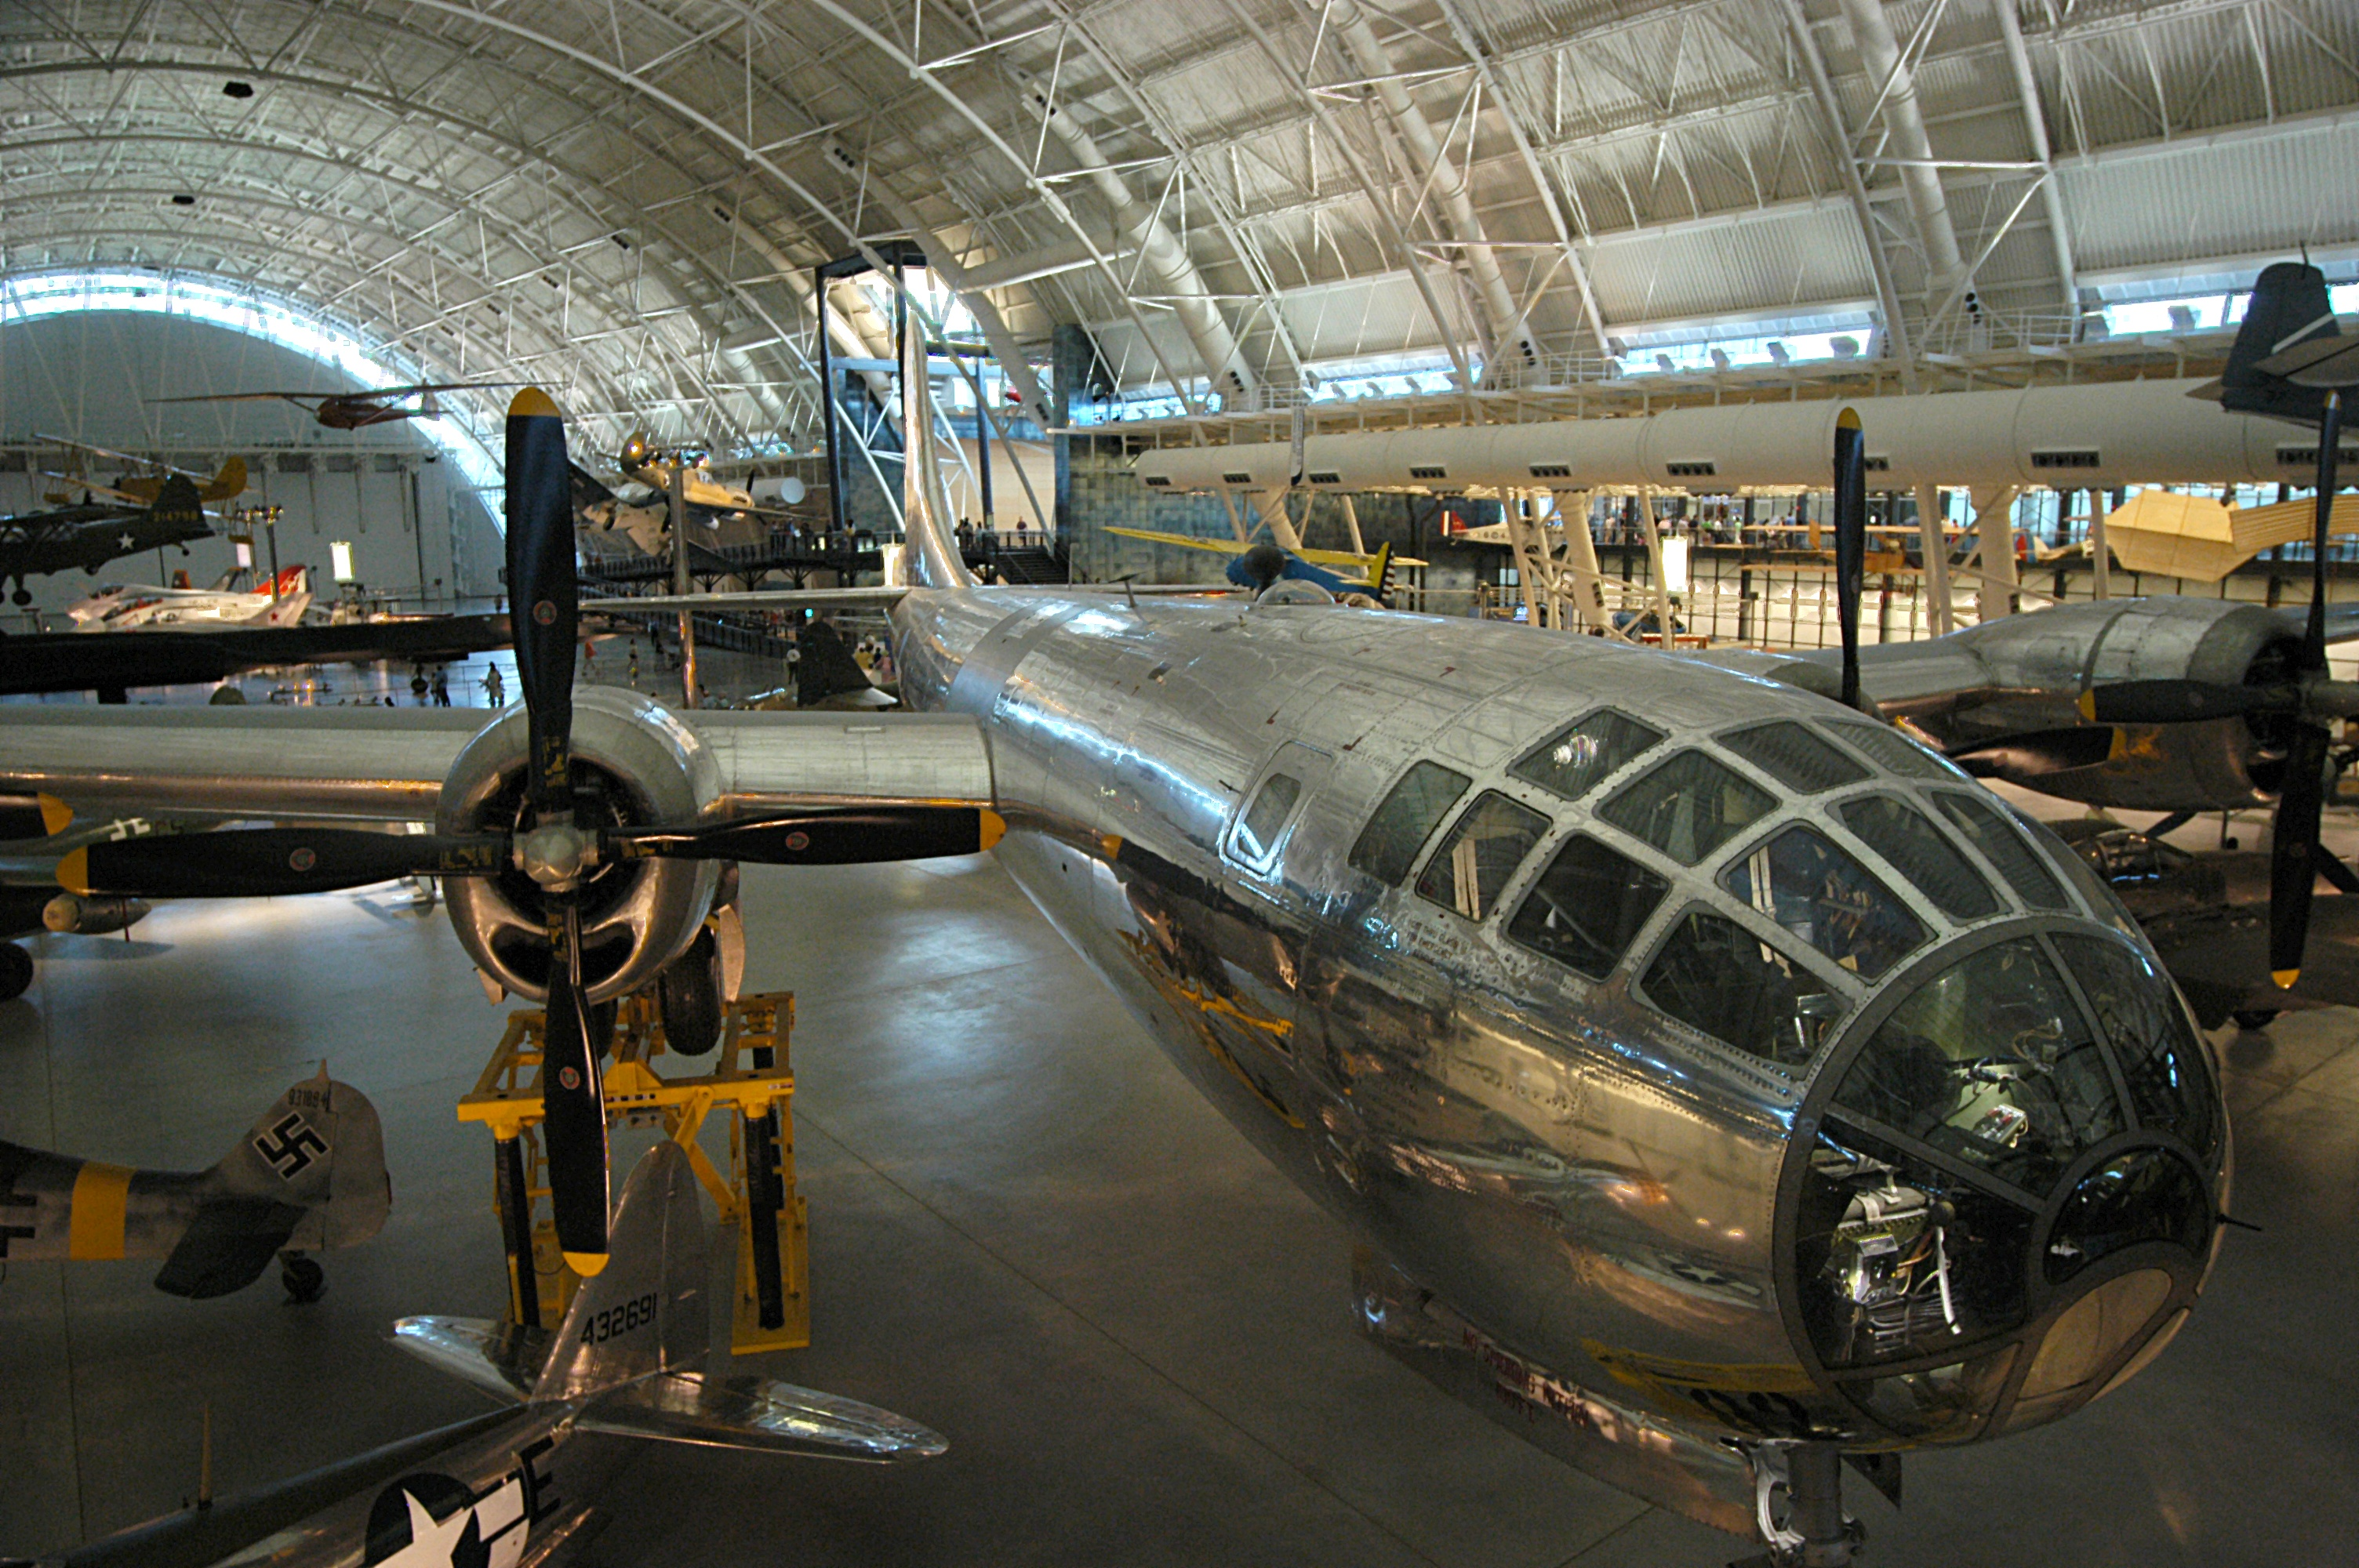 Enola Gay Airplane 112